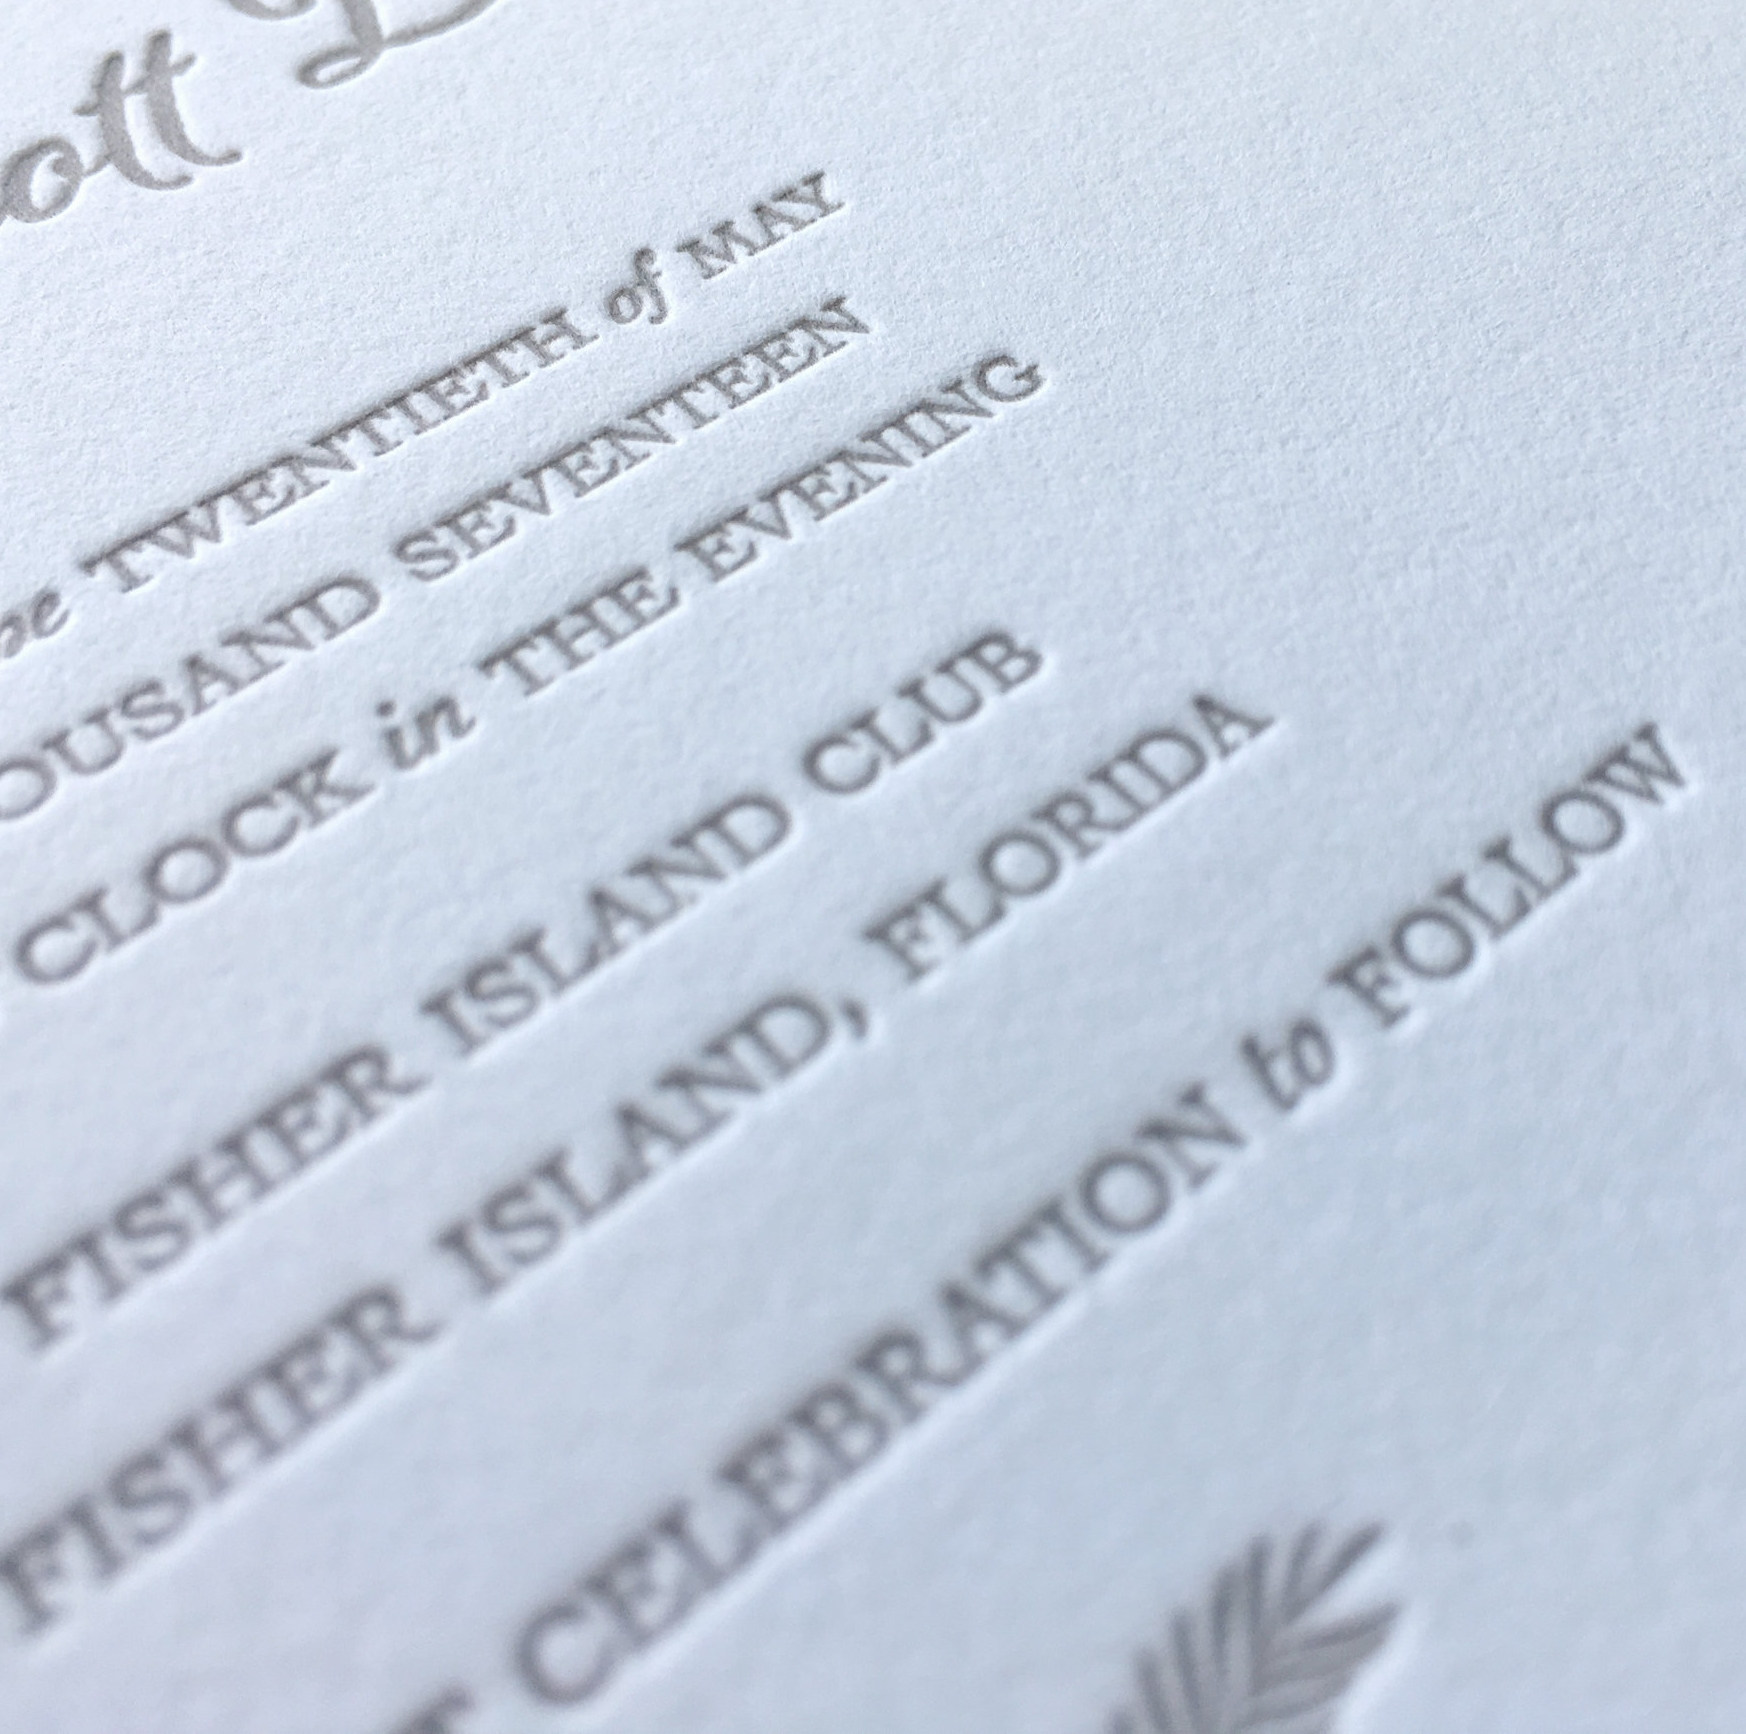 Printing Methods for wedding stationery - Letter press wedding invitations